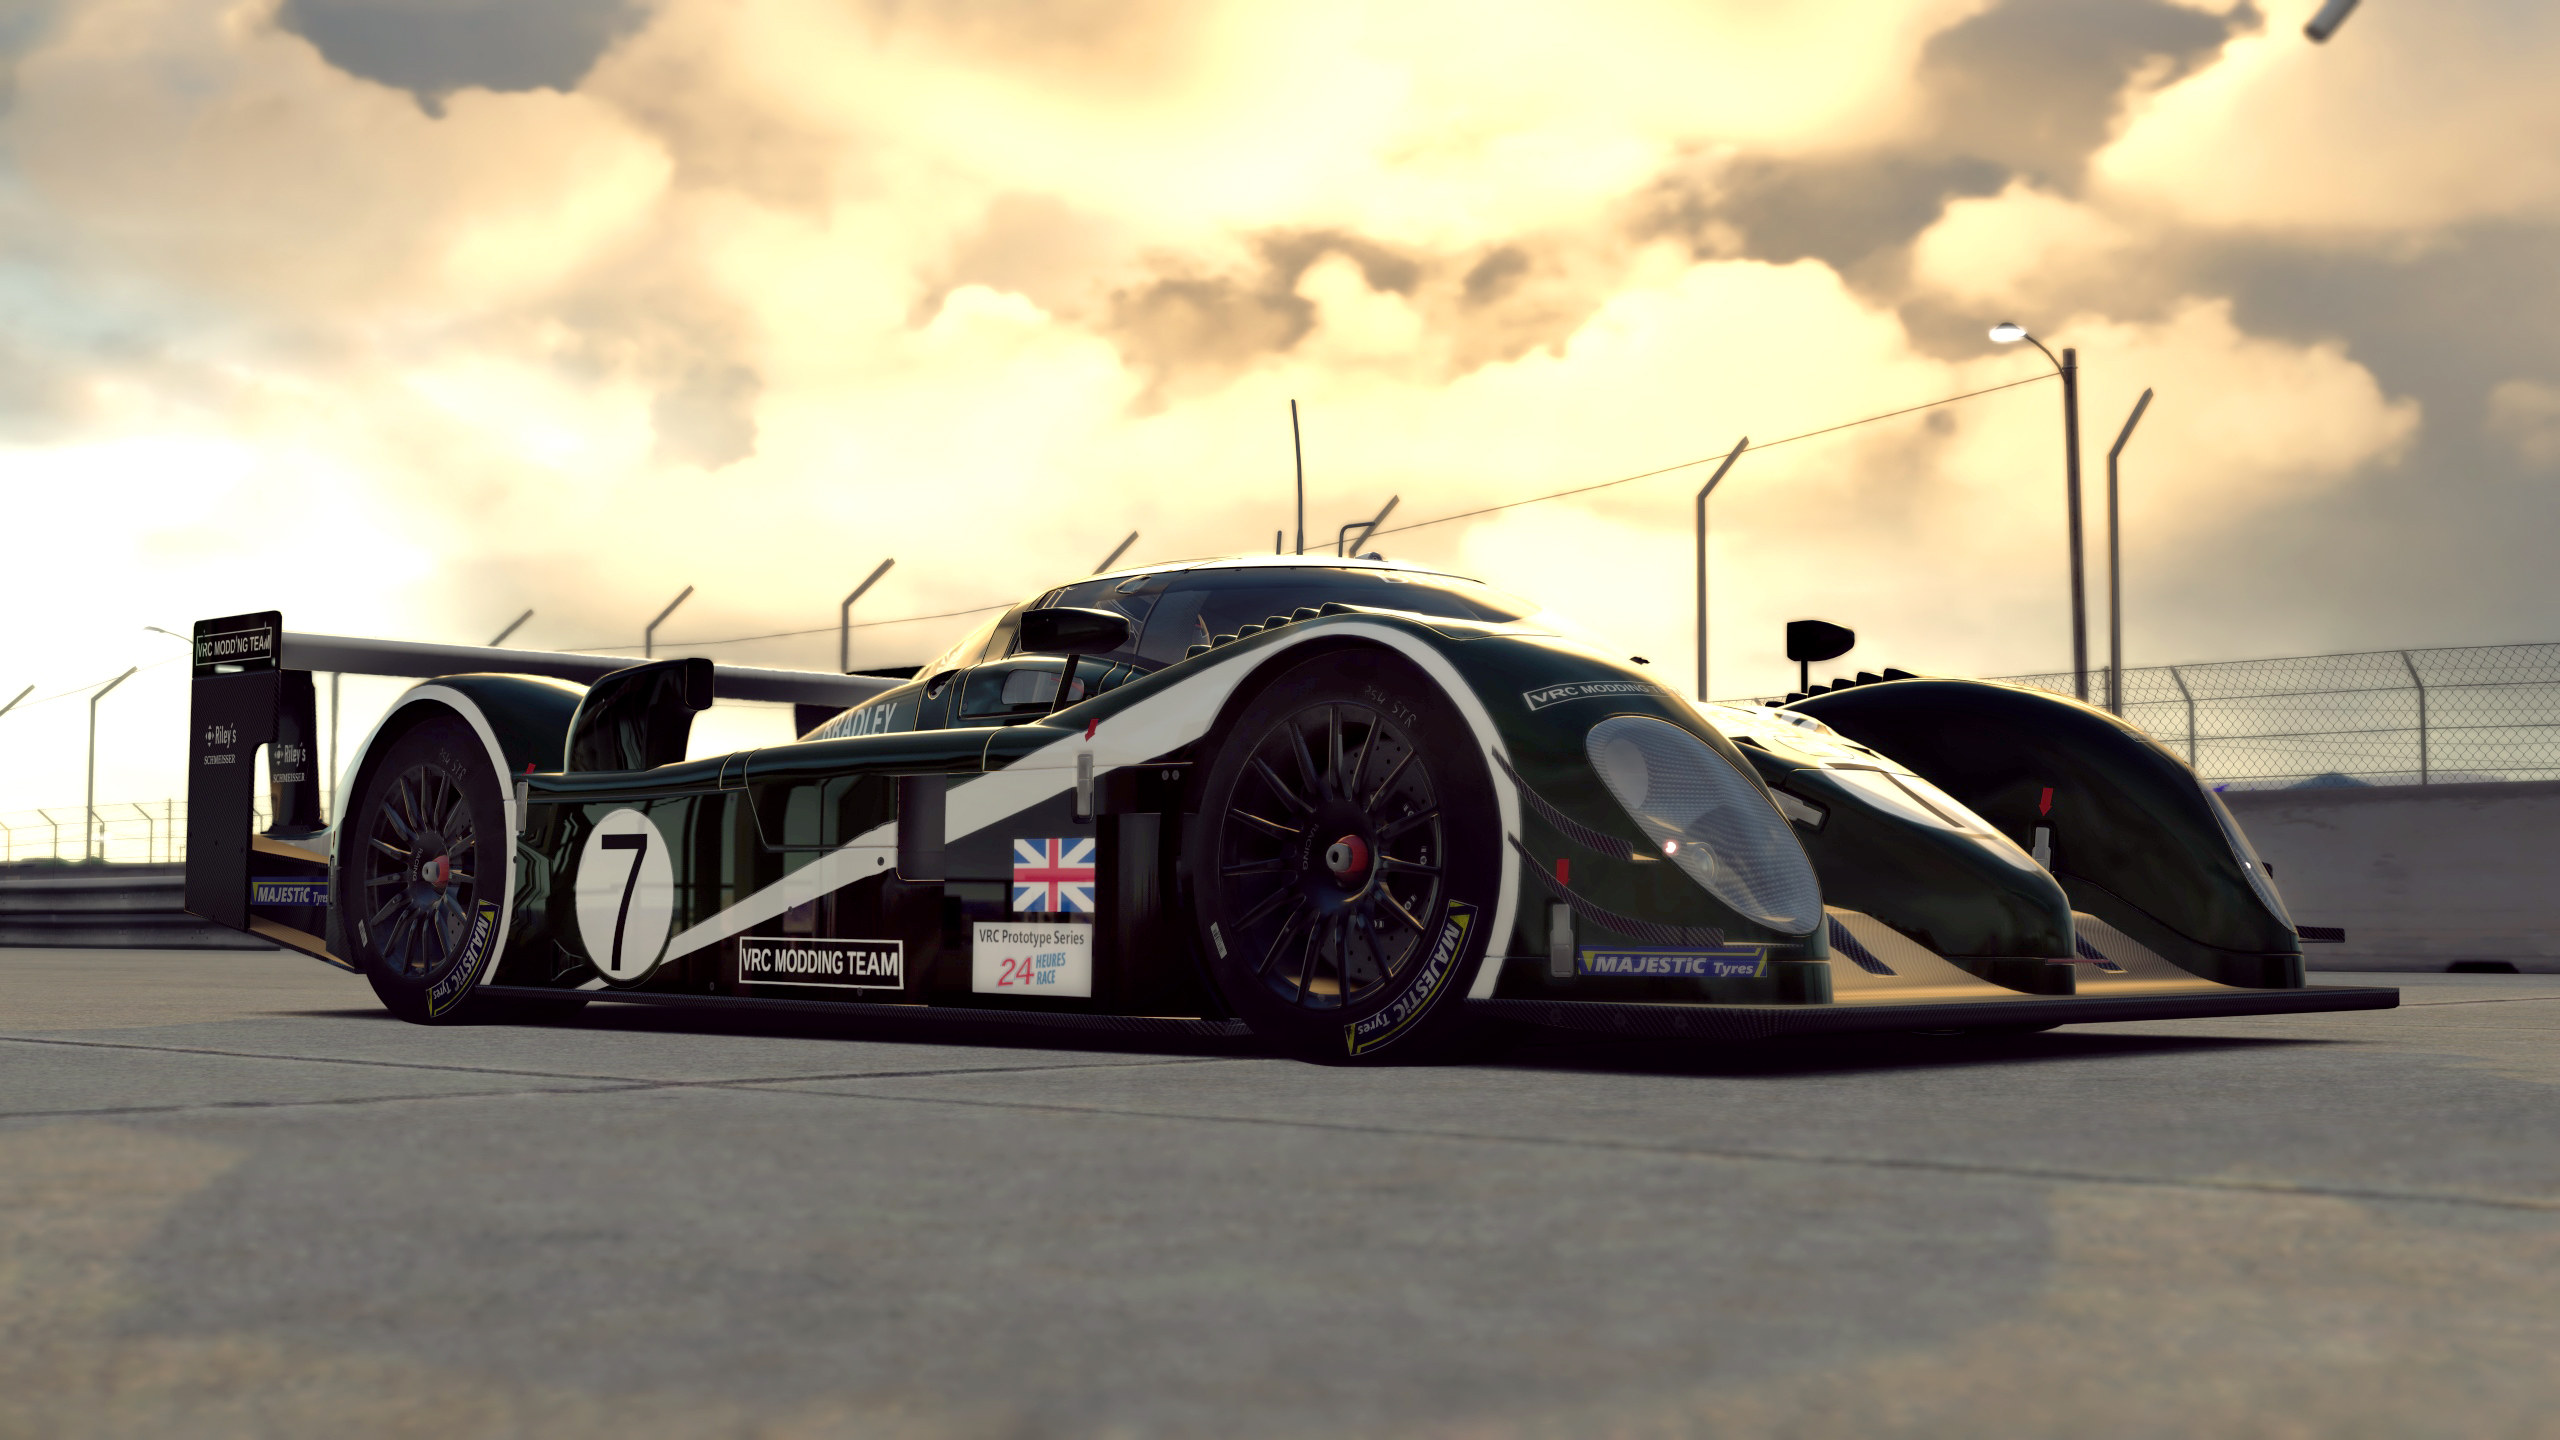 VRC Bentley Speed 8 Assetto Corsa Mod [First Look]